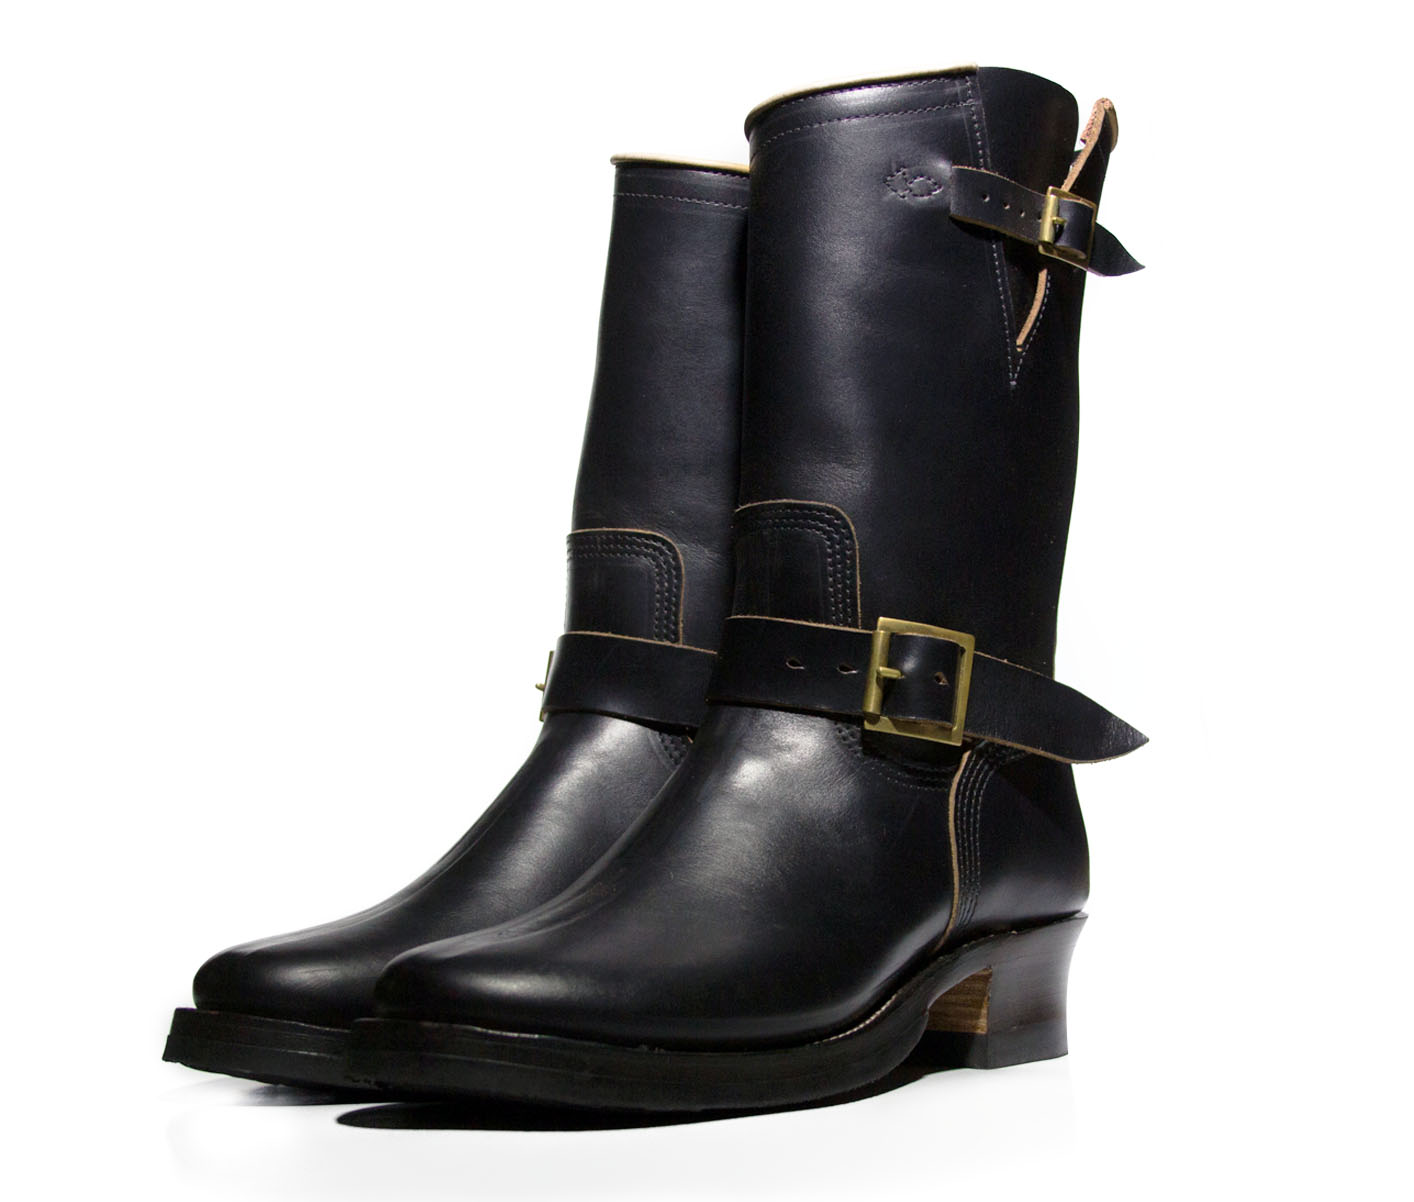 Role Club Engineer Boots